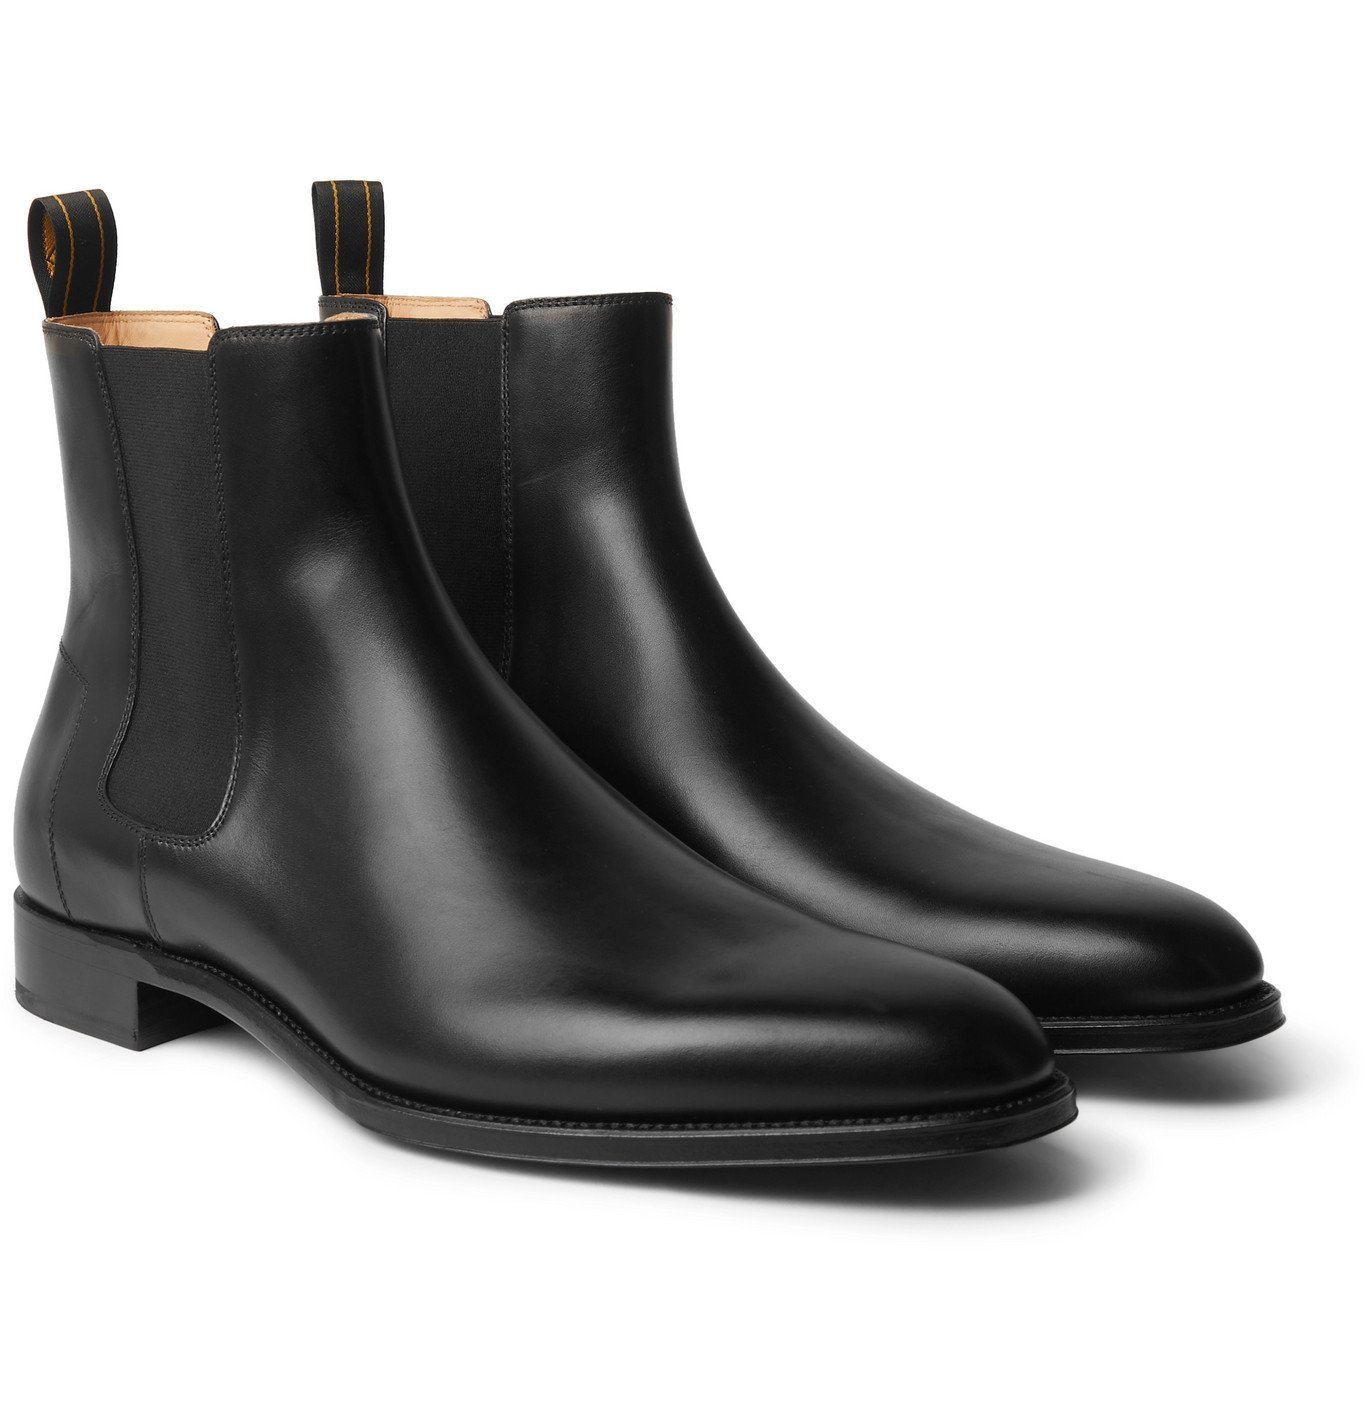 Dunhill - Leather Chelsea Boots - Black